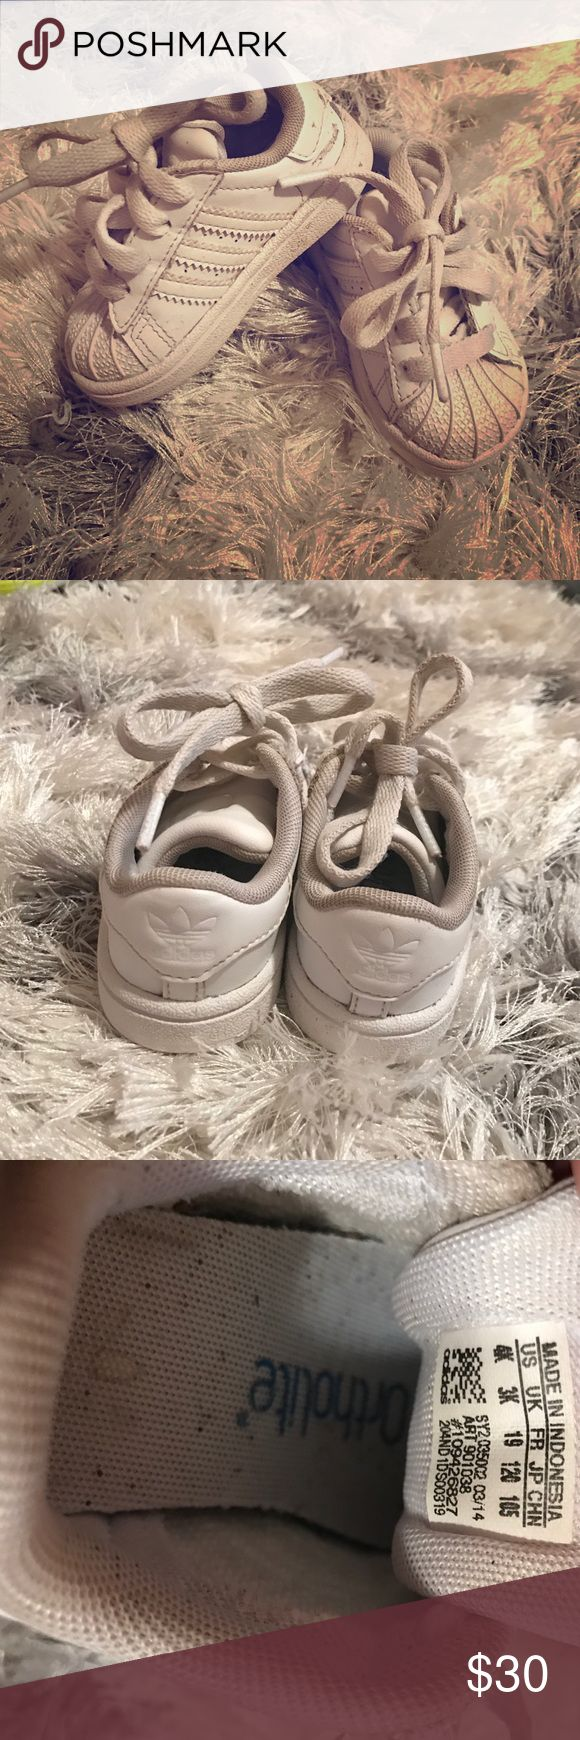 Adidas superstar toddler shoes size 4 All white adorable Adidas superstar shoes toddler size 4. Goes with everything and great for boy or girl. Adidas Shoes Athletic Shoes